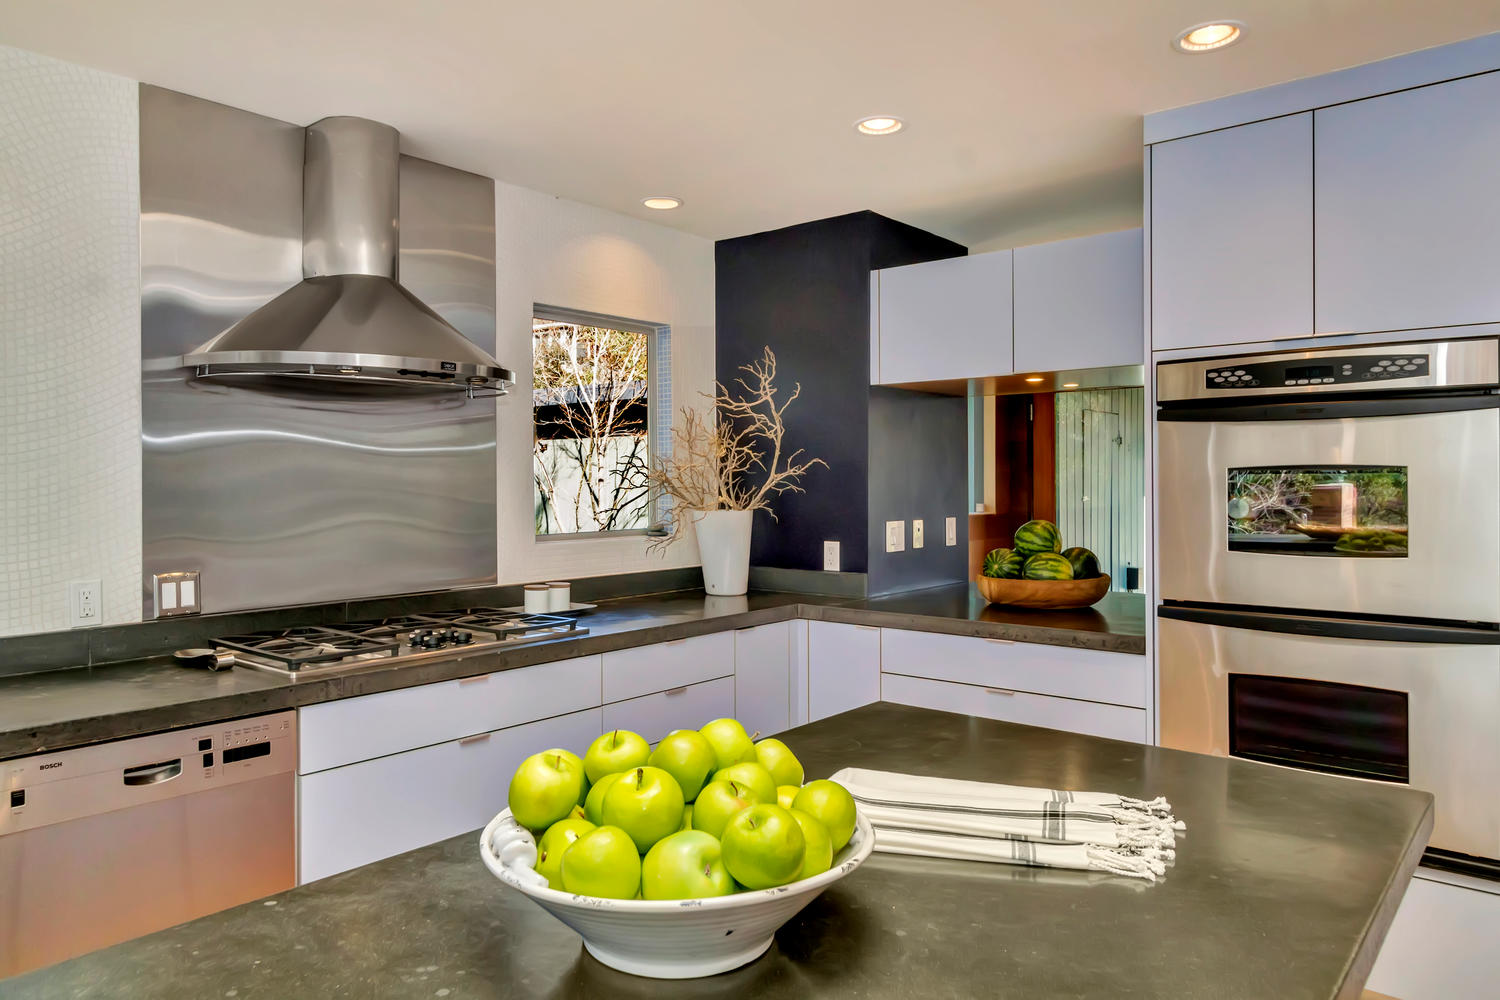 40 Acacia Dr Orinda CA 94563-large-025-7-Stainless Steel Appliances-1500x1000-72dpi.jpg